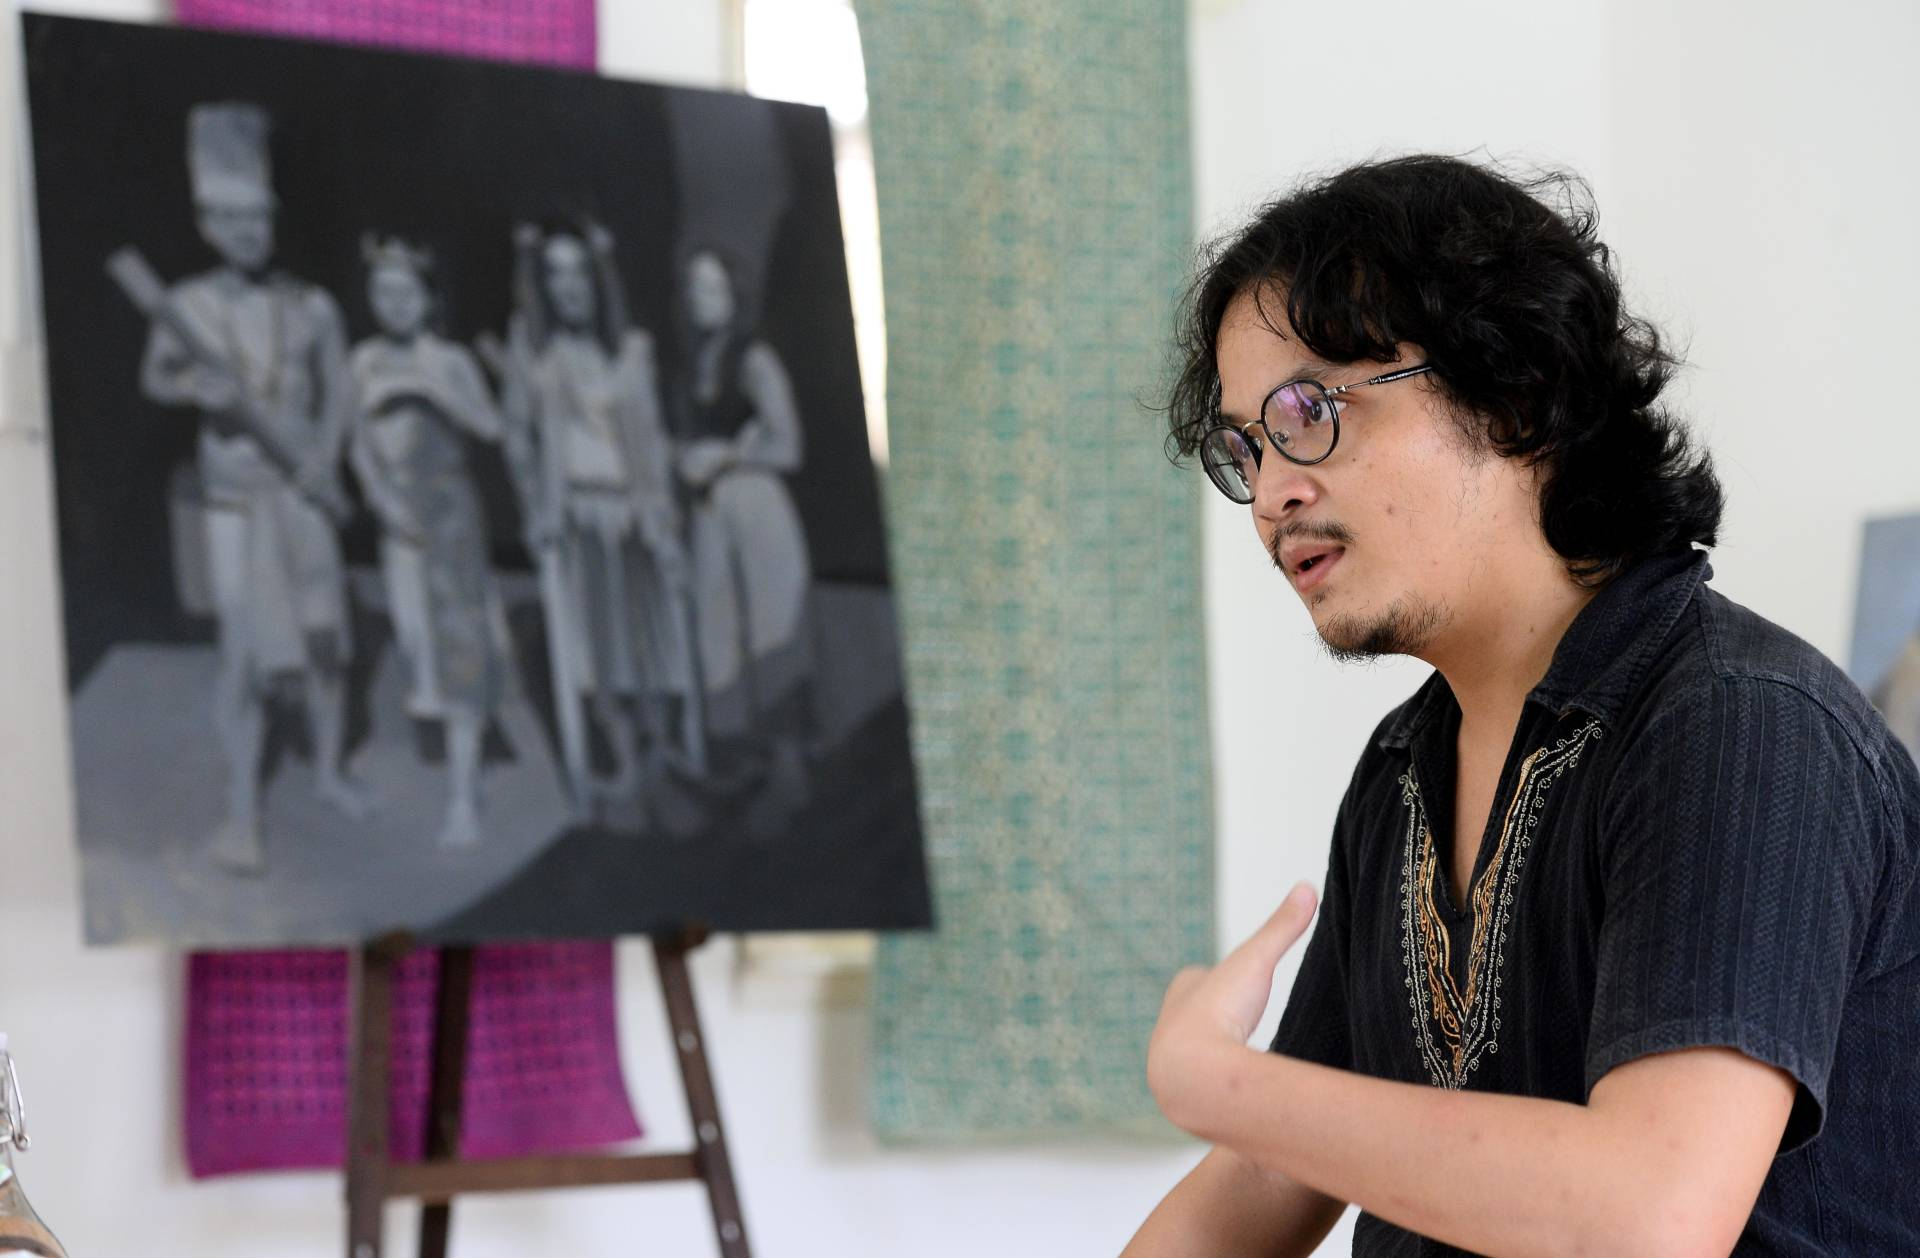 Ritom wants to develop a broader documentary series of portrait and landscape works surrounding indigenous people in Malaysia.